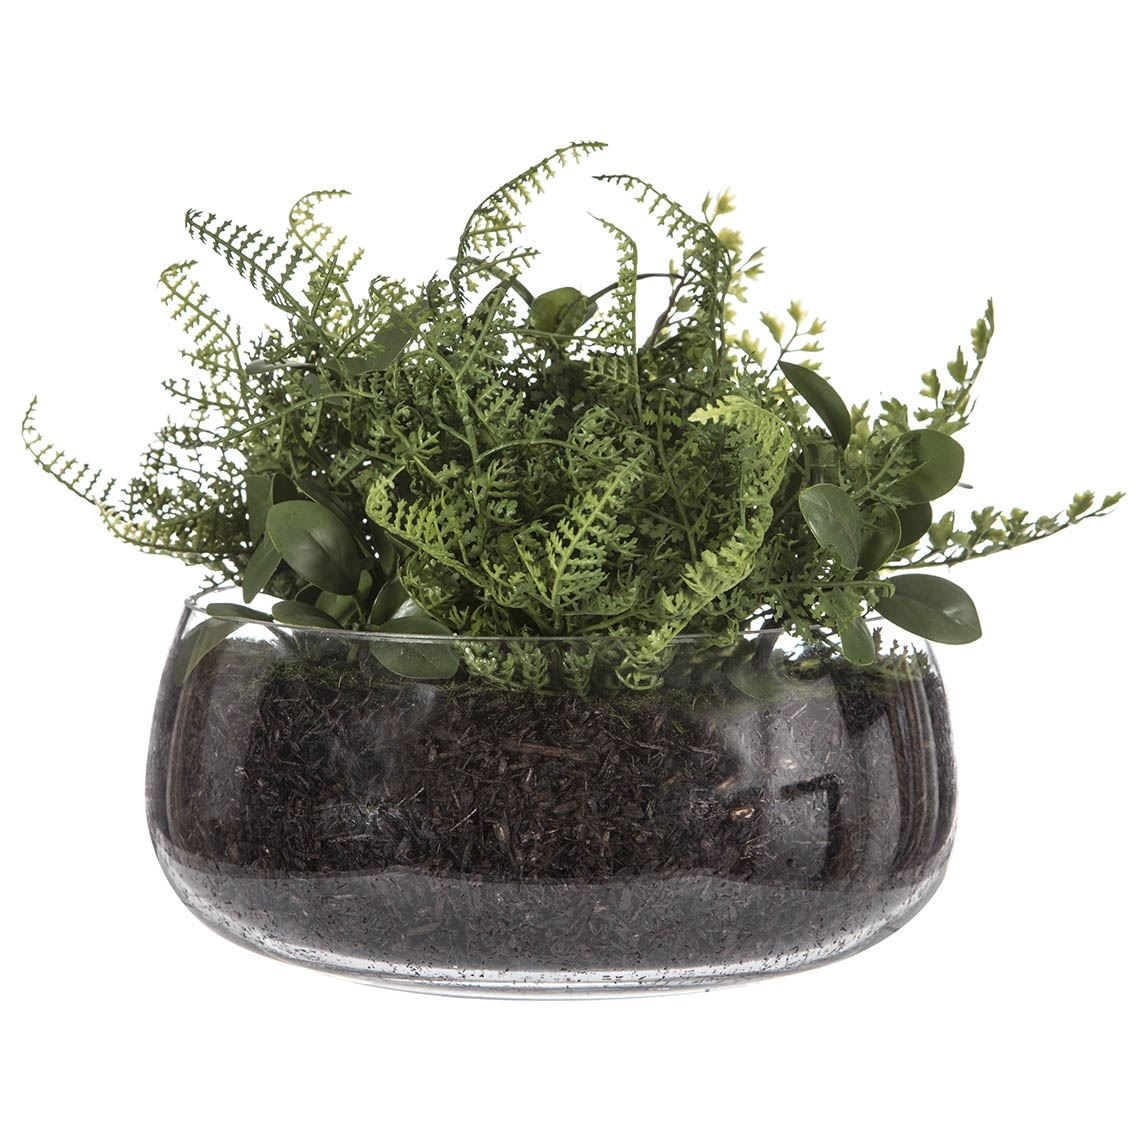 Leather Fern Mix Size W 29cm x D 3cm x H 21cm in Green/Glass Plastic/Glass Freedom by Freedom, a Plants for sale on Style Sourcebook